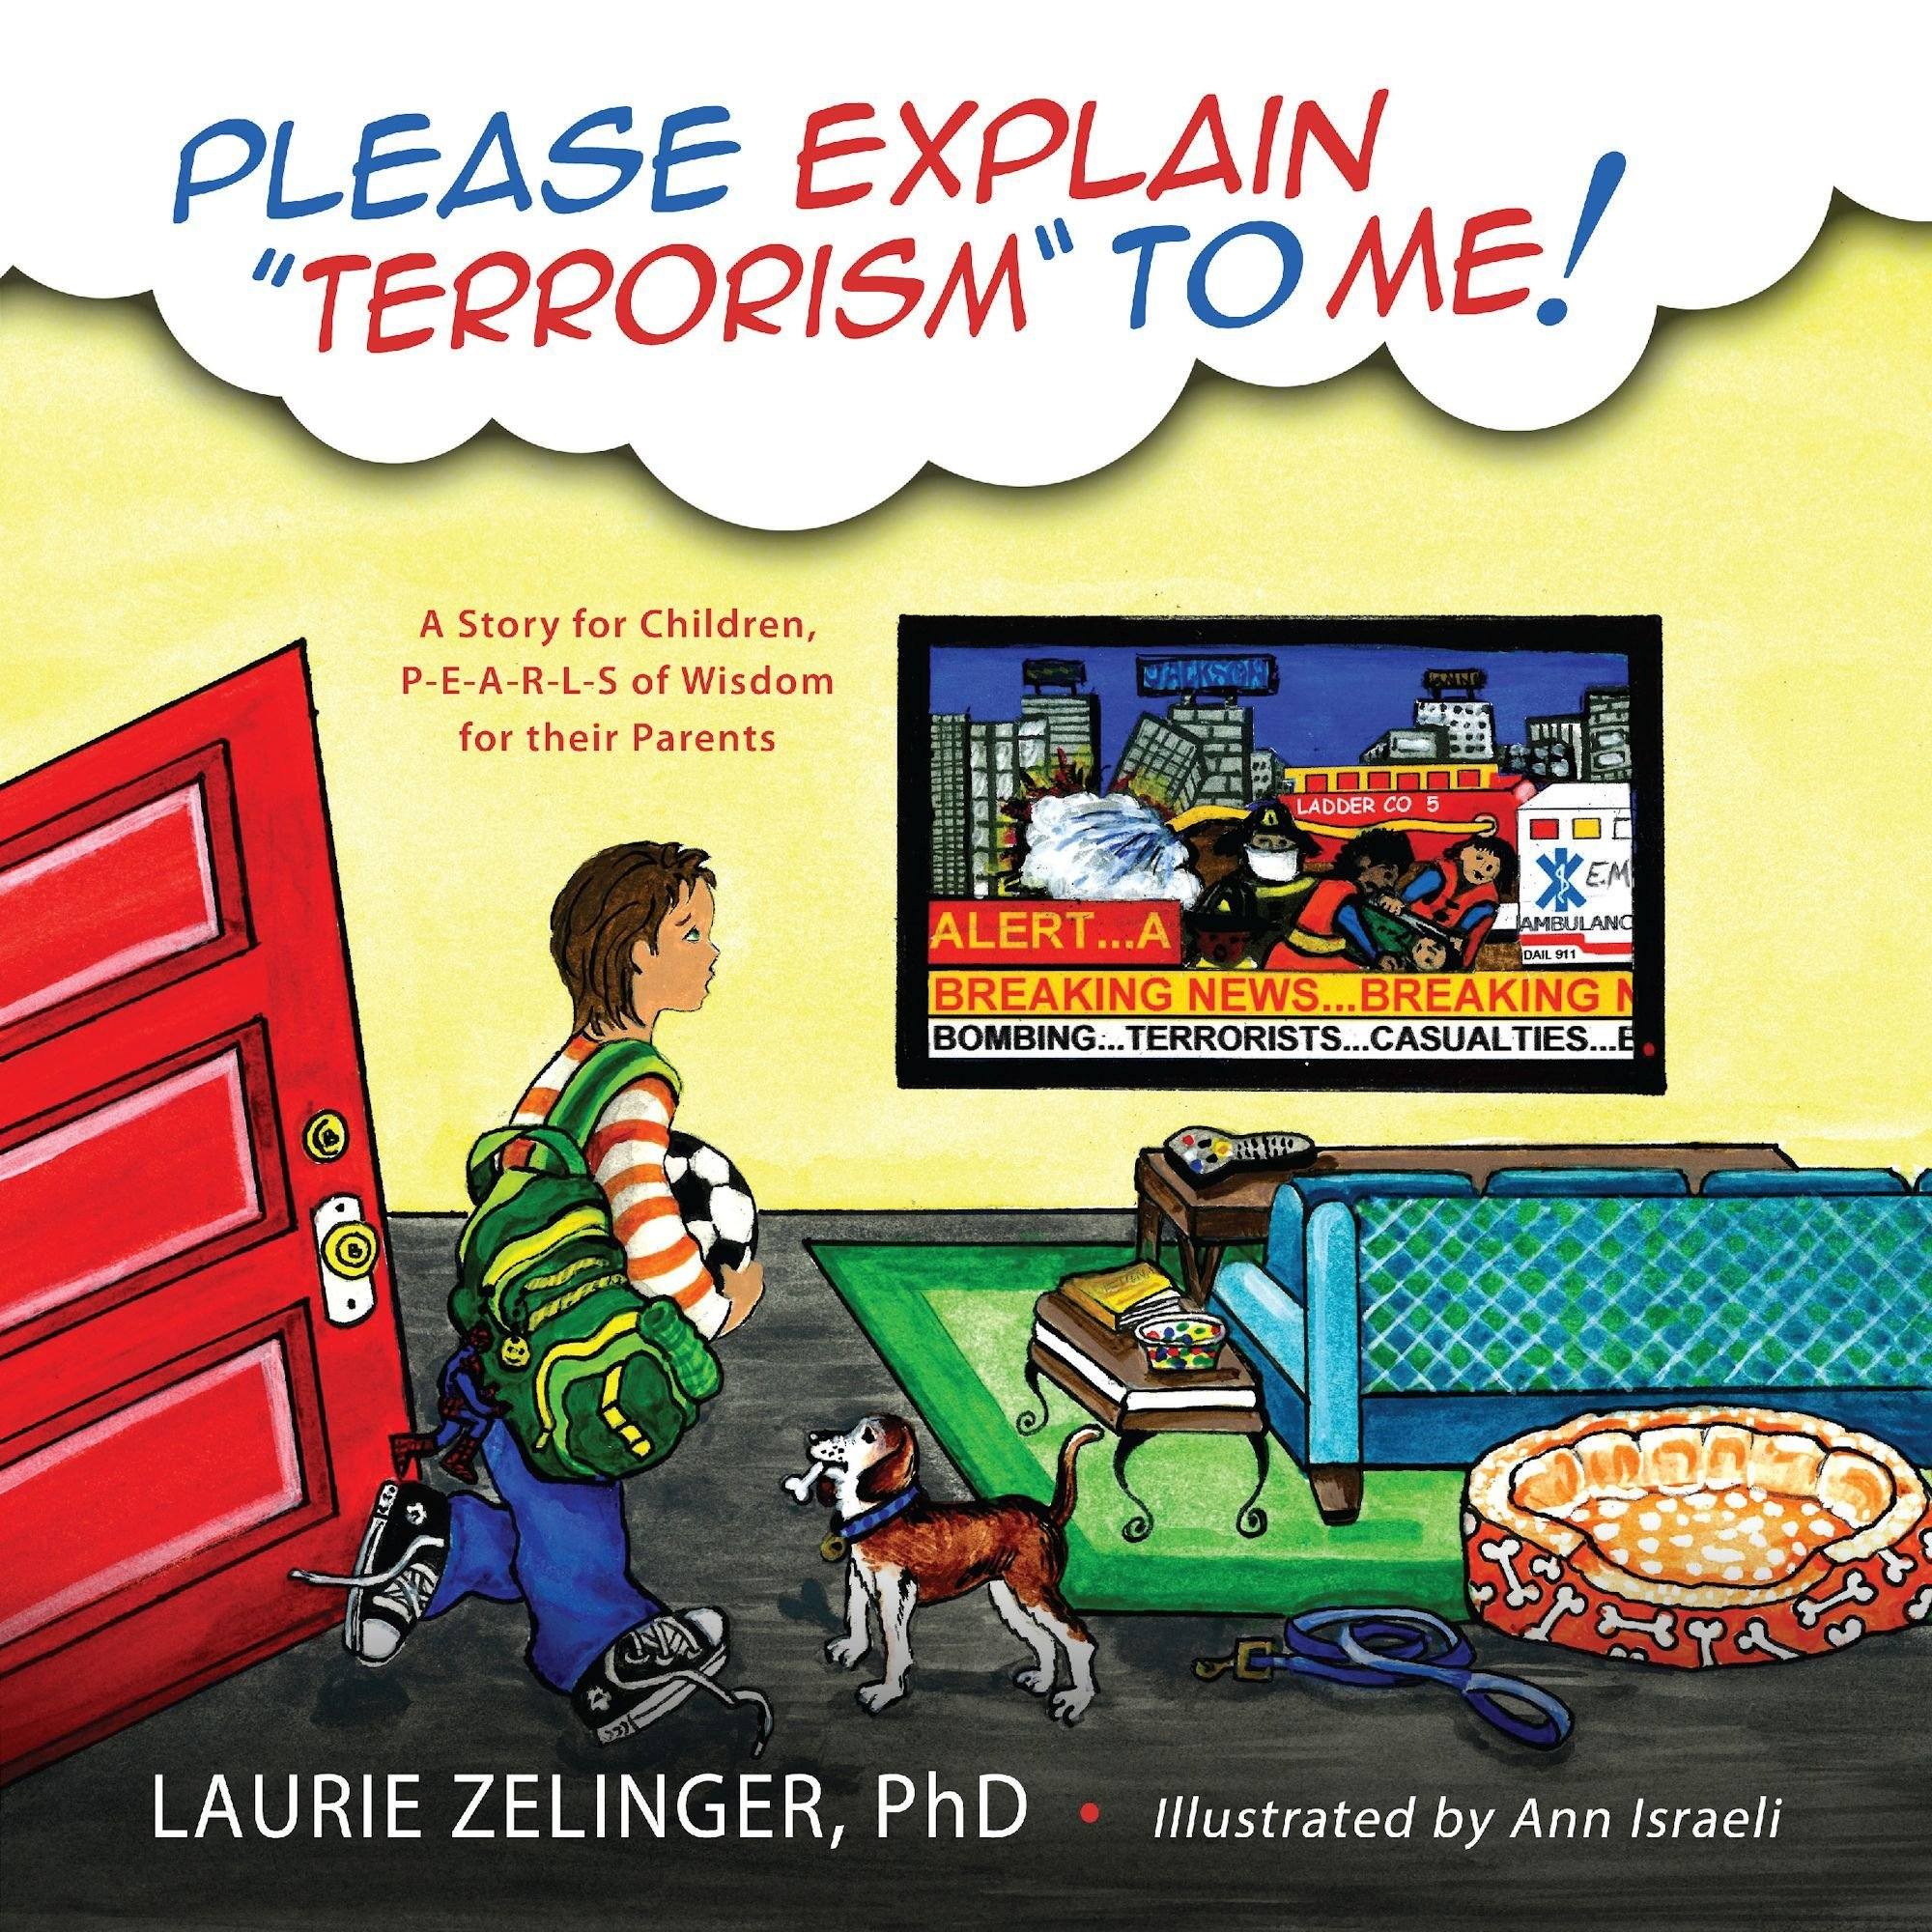 Please Explain Terrorism To Me: A Story for Children, PEARLS of Wisdom for their Parents 978-1-61599-291-1